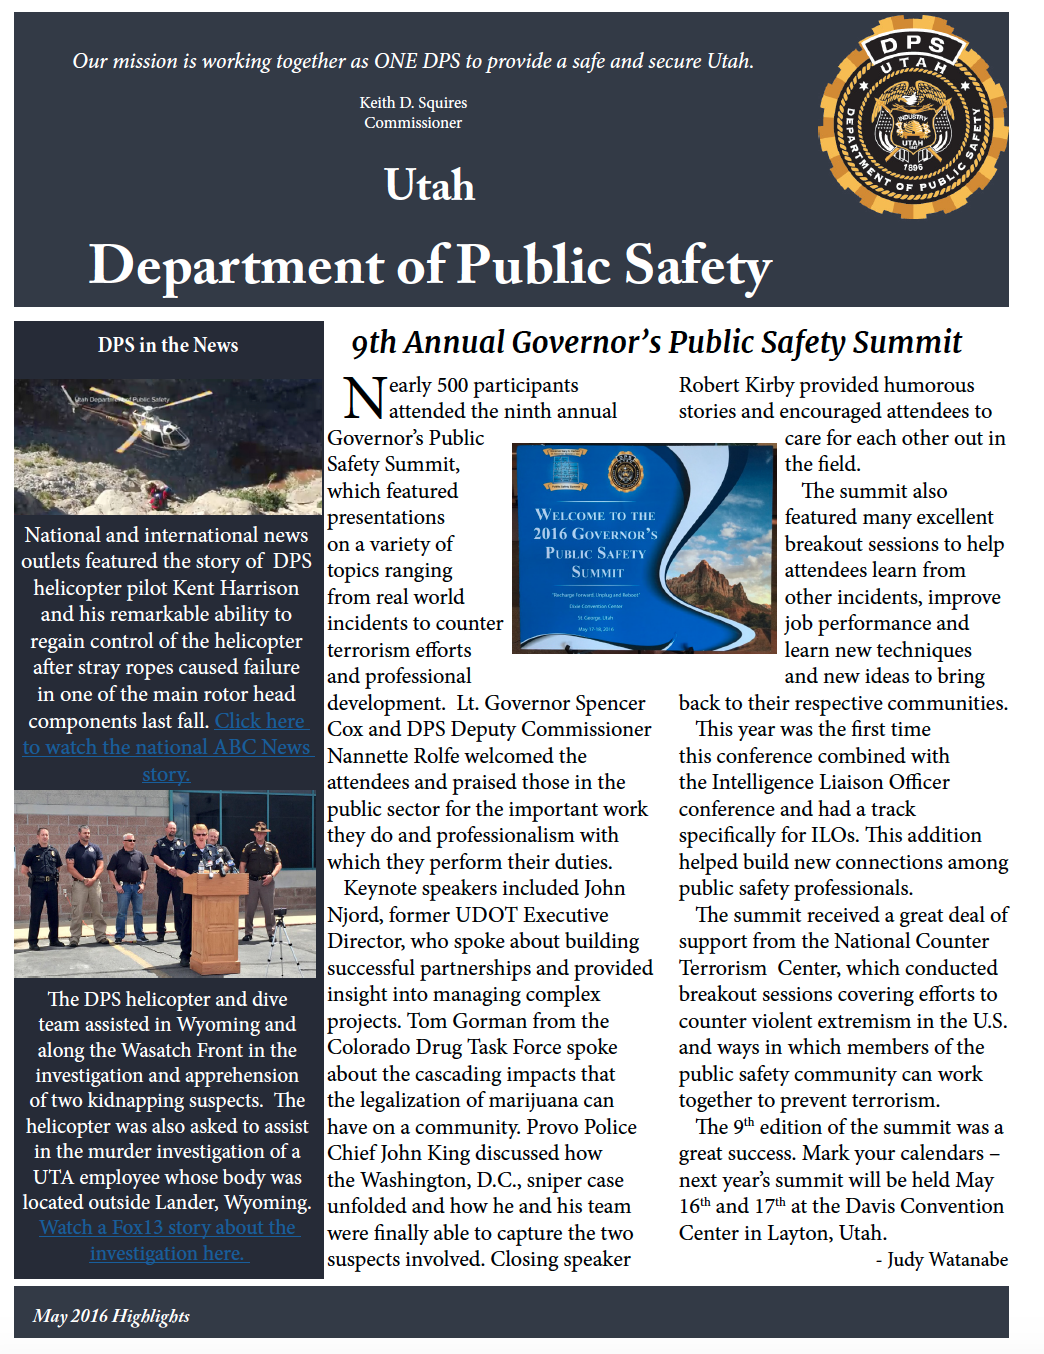 Screen cap of front page of DPS highlights document